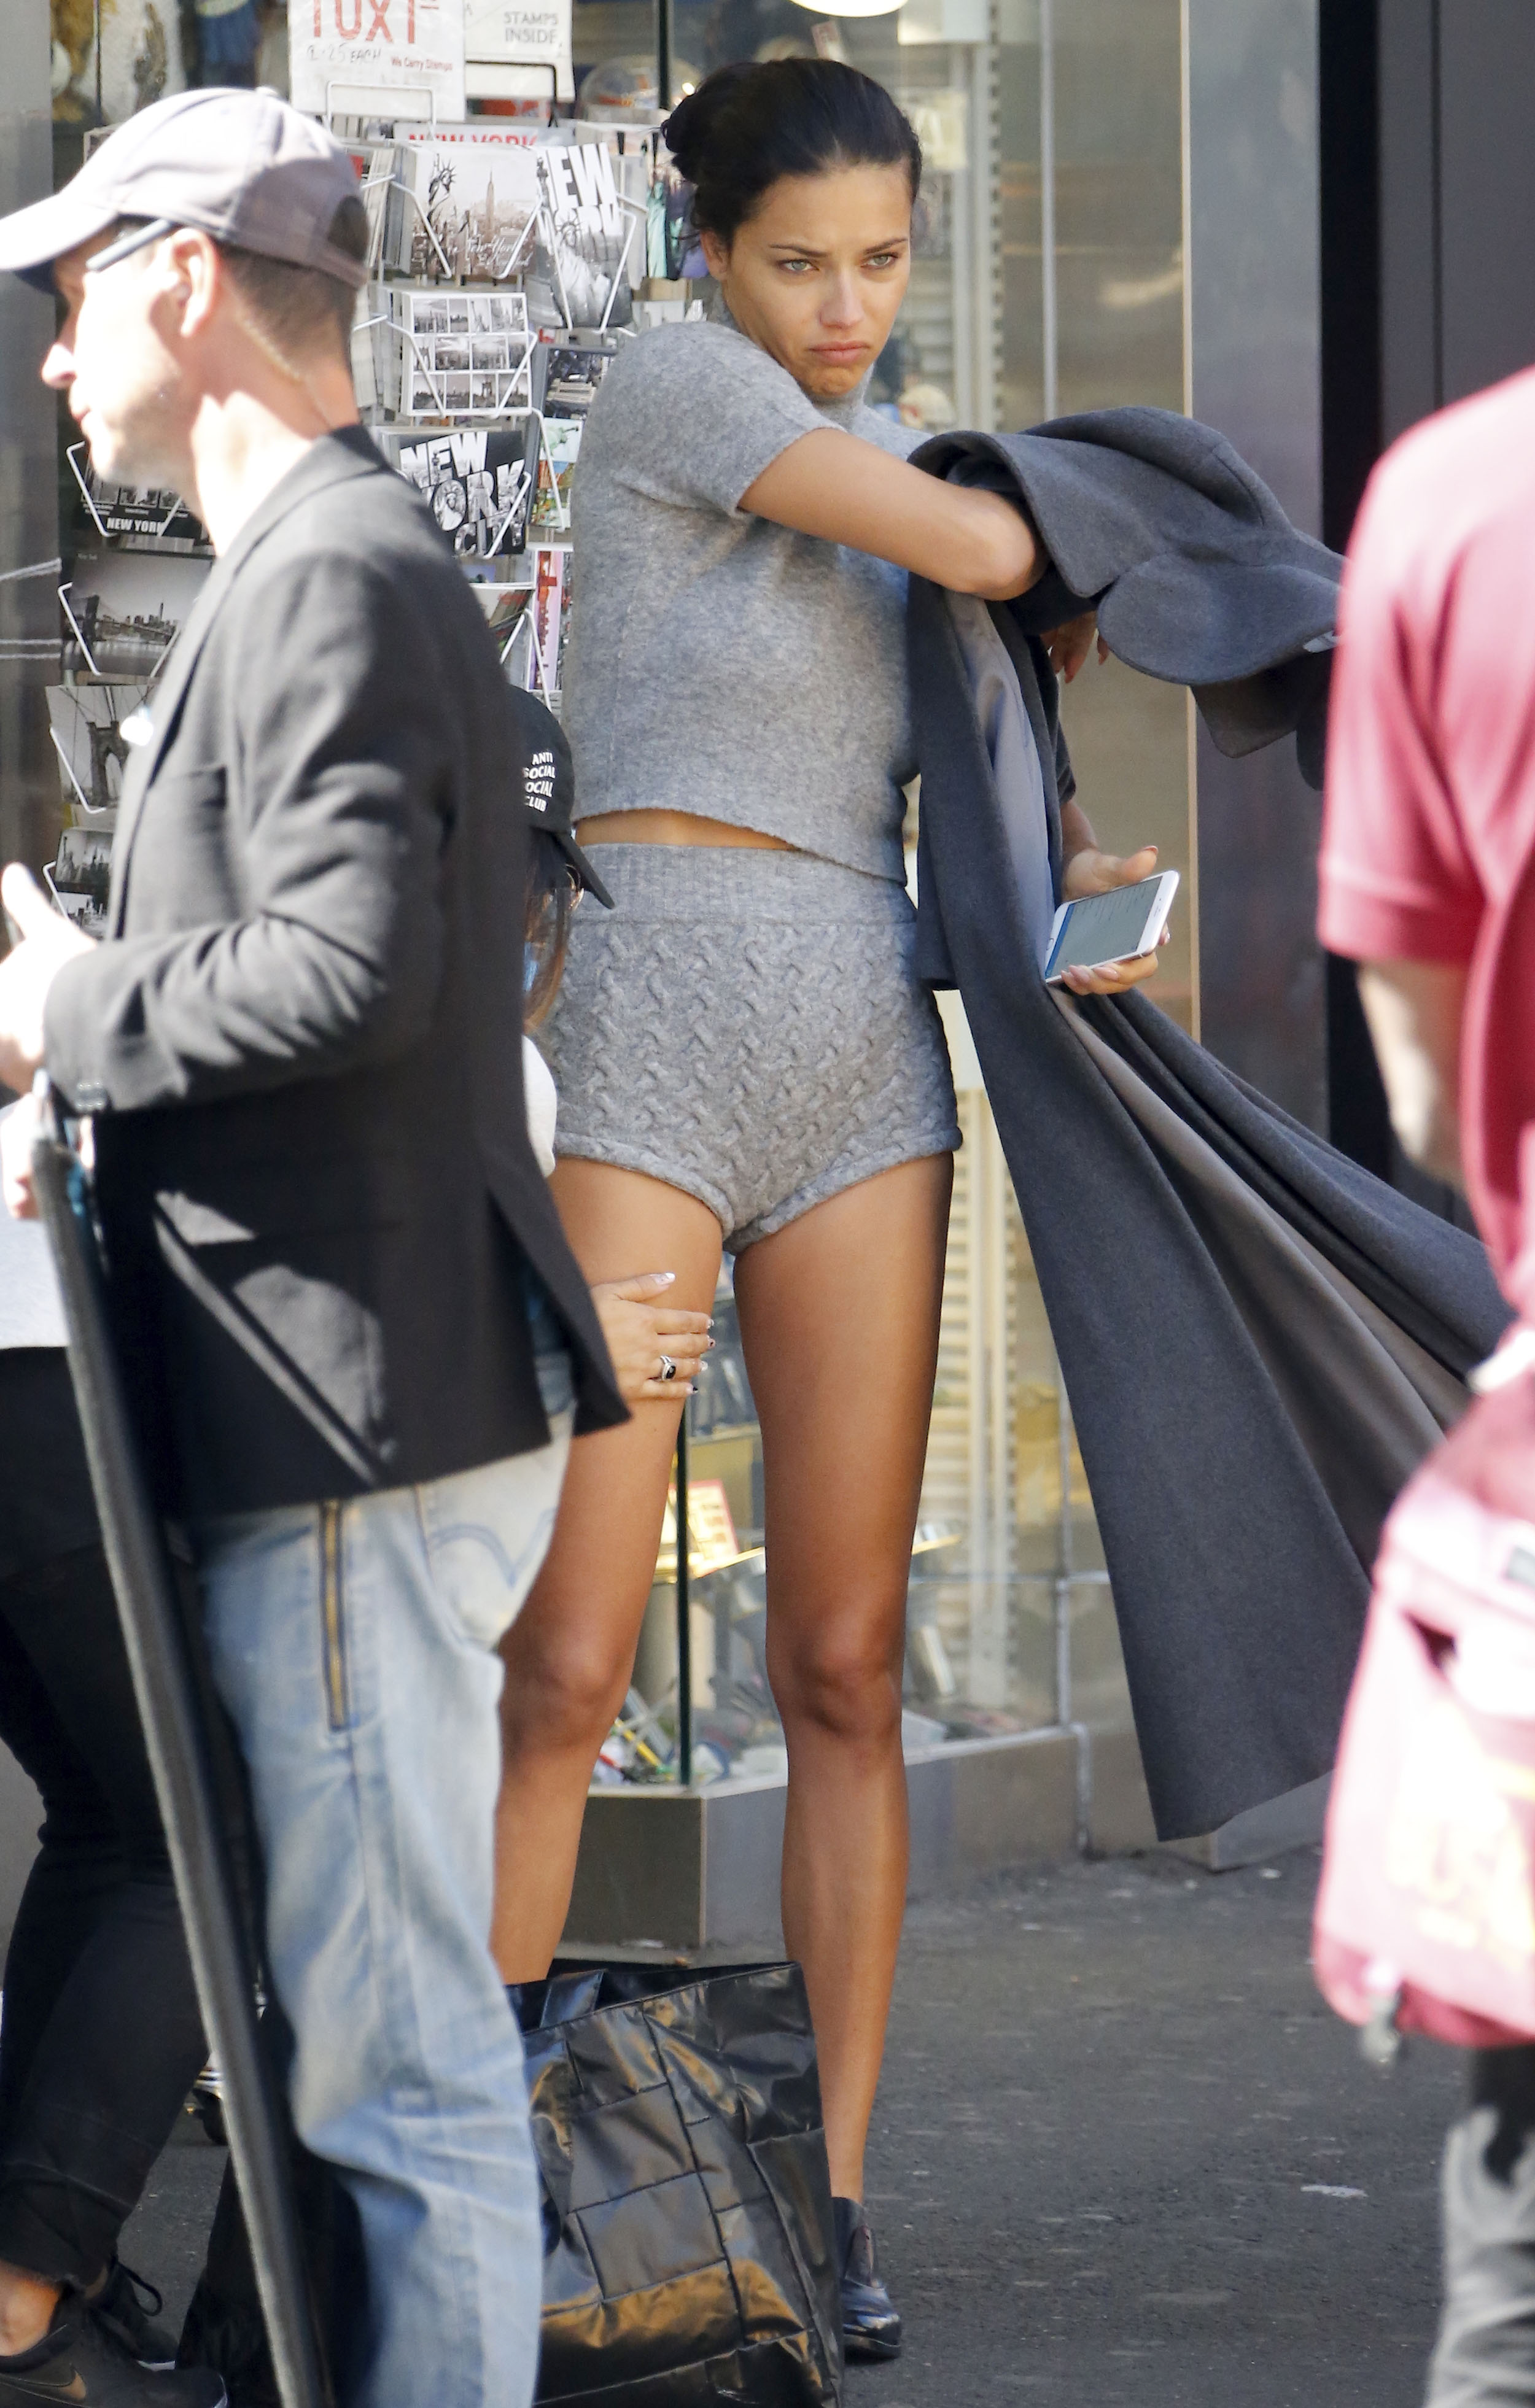 Adriana Lima in Times Square, shooting